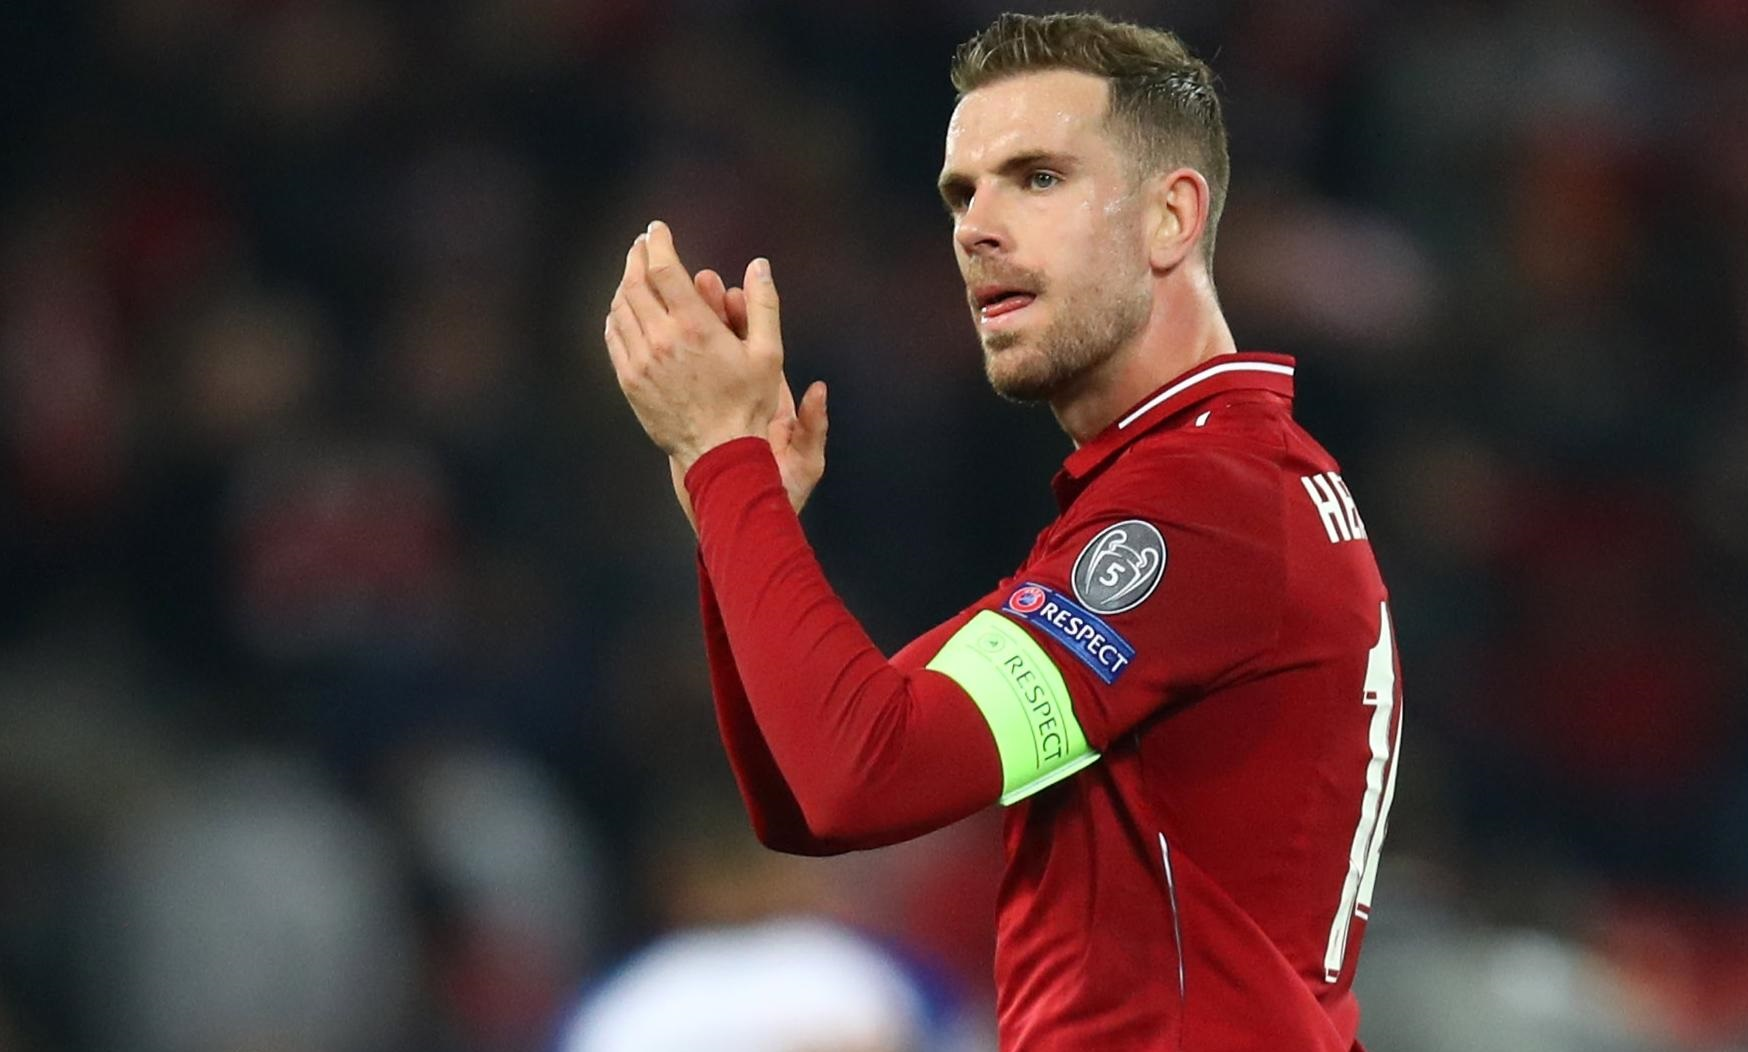 Jordan Henderson: What is the Liverpool captain's best position?